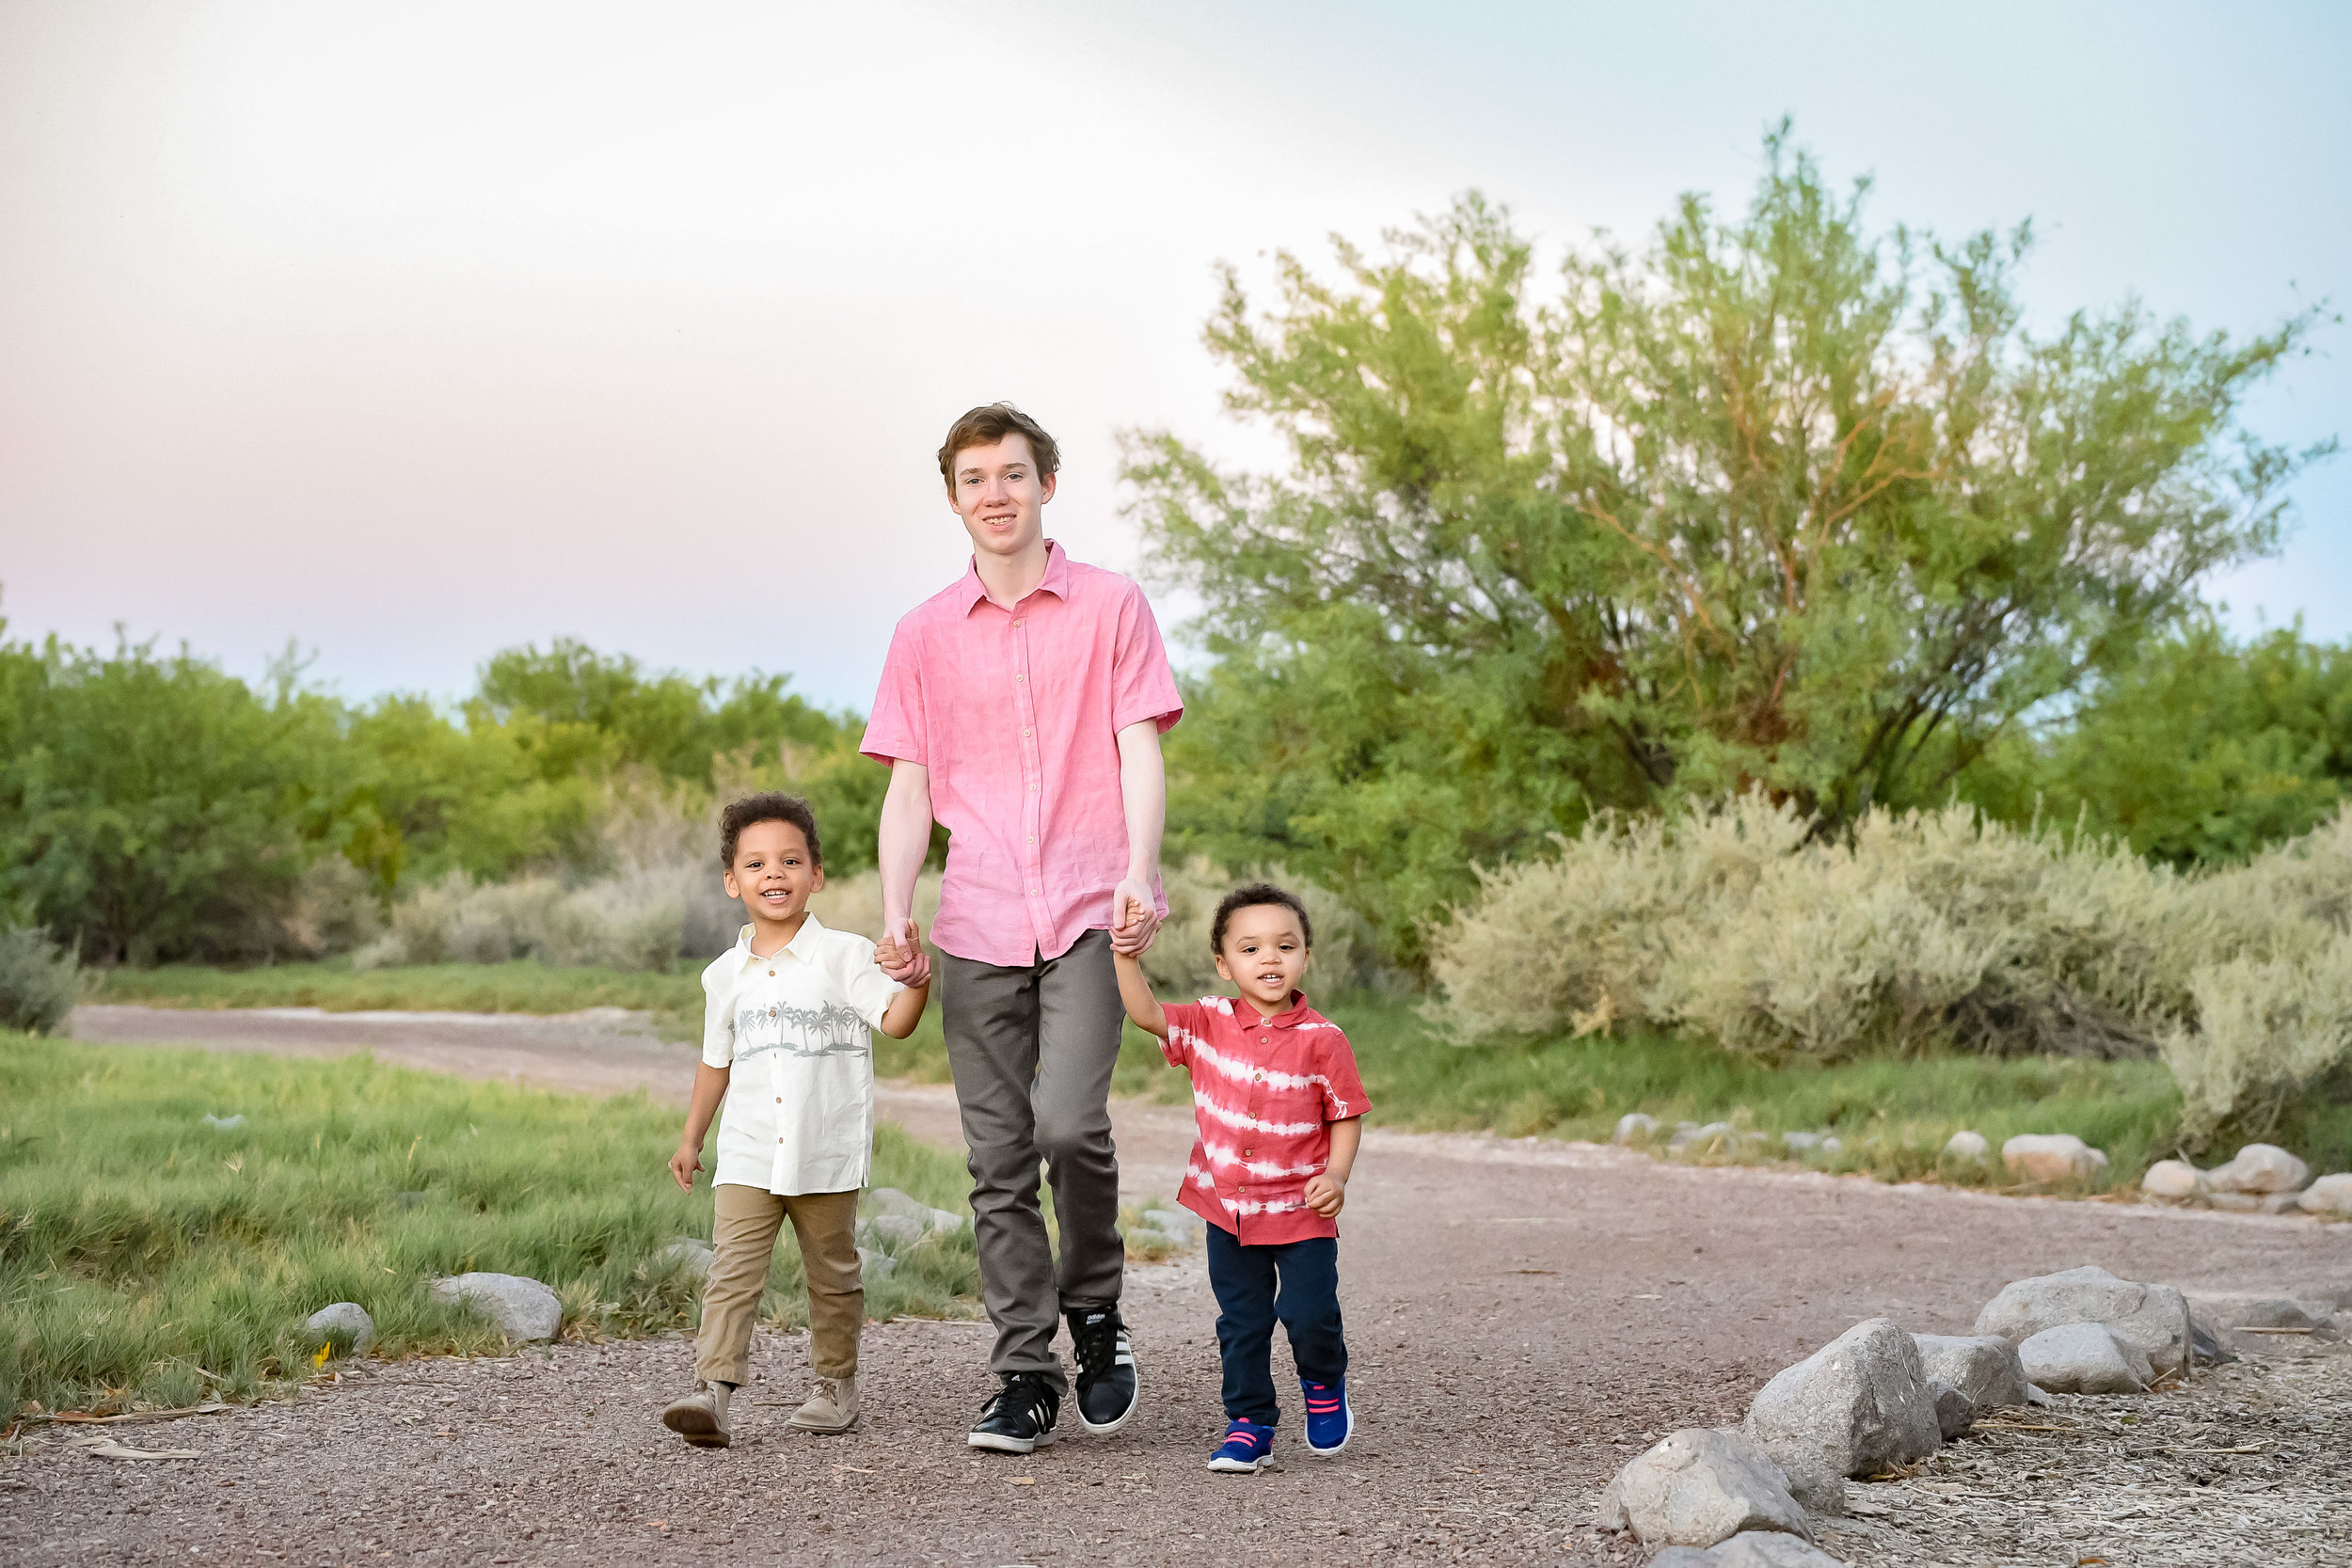 las-vegas-desert-photographer-family-session.jpg